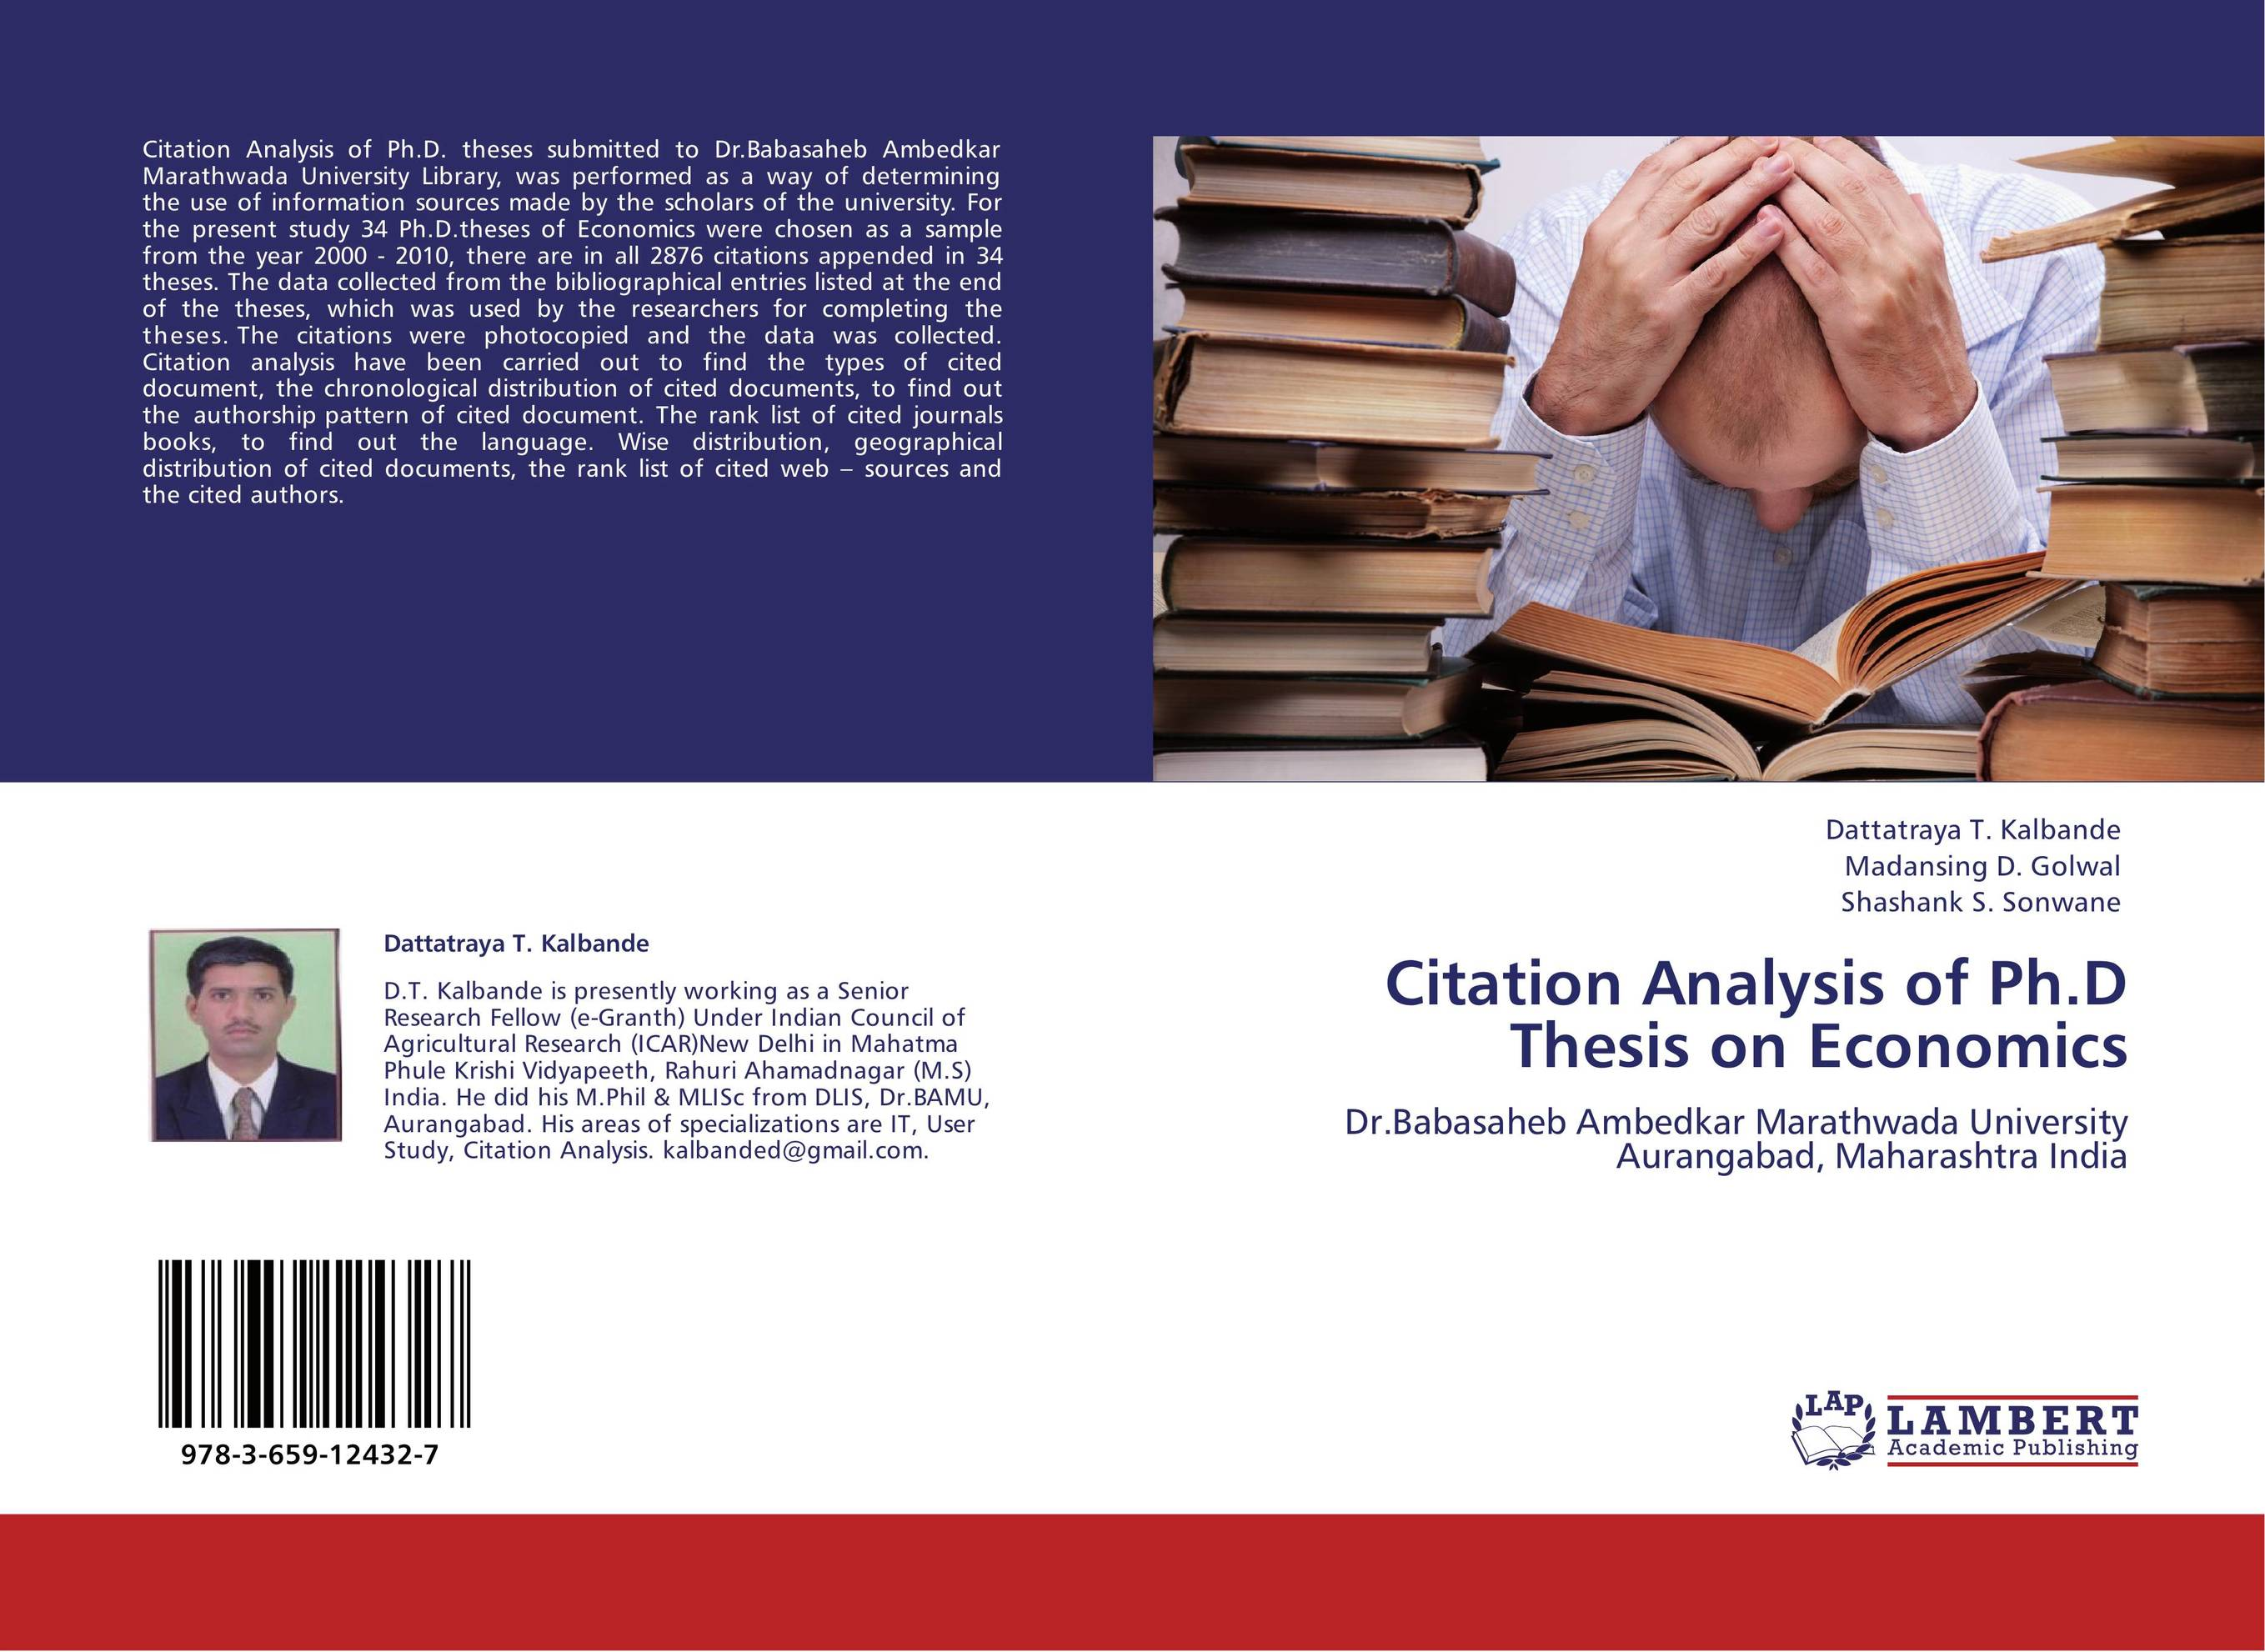 thesis in economics Economics thesis statement argumentative bank of america essay the popularity the bank is enjoying at the present moment would not be possible without the extraordinary efforts of the people who actually run the bank at its very top in terms of such people it is necessary to point out three major ones: president, chief executive officer (ceo.